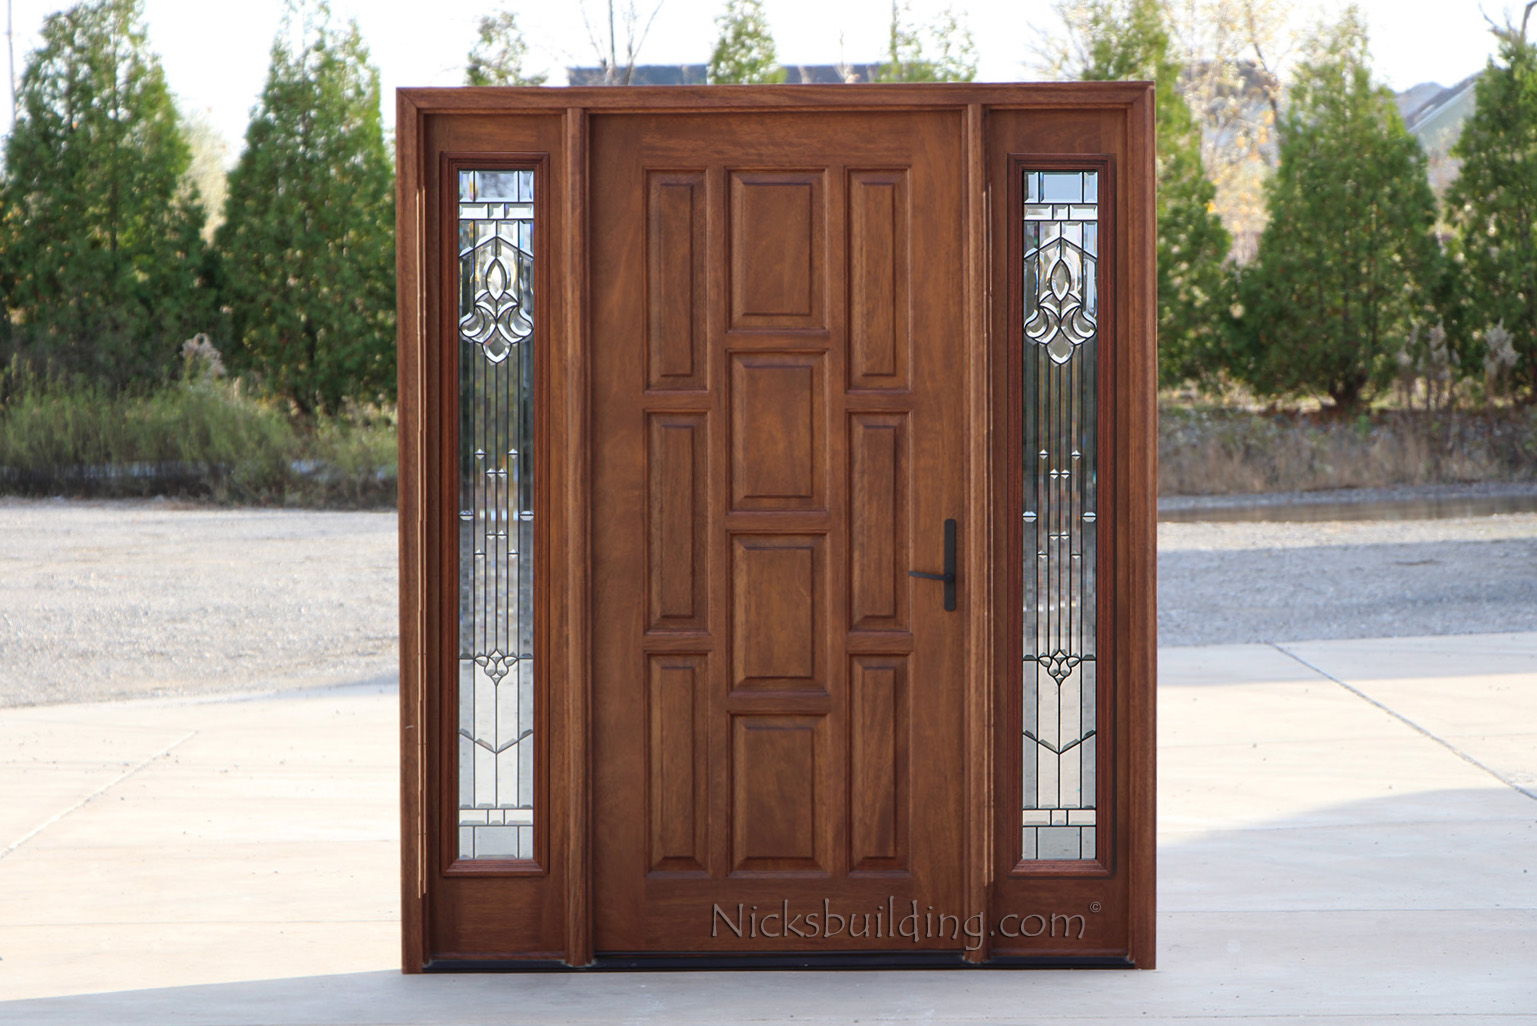 1026 #6D4232 Exterior Doors With Sidelights Solid Mahogany Entry Doors picture/photo Entry Doors With Sidelights 41991537